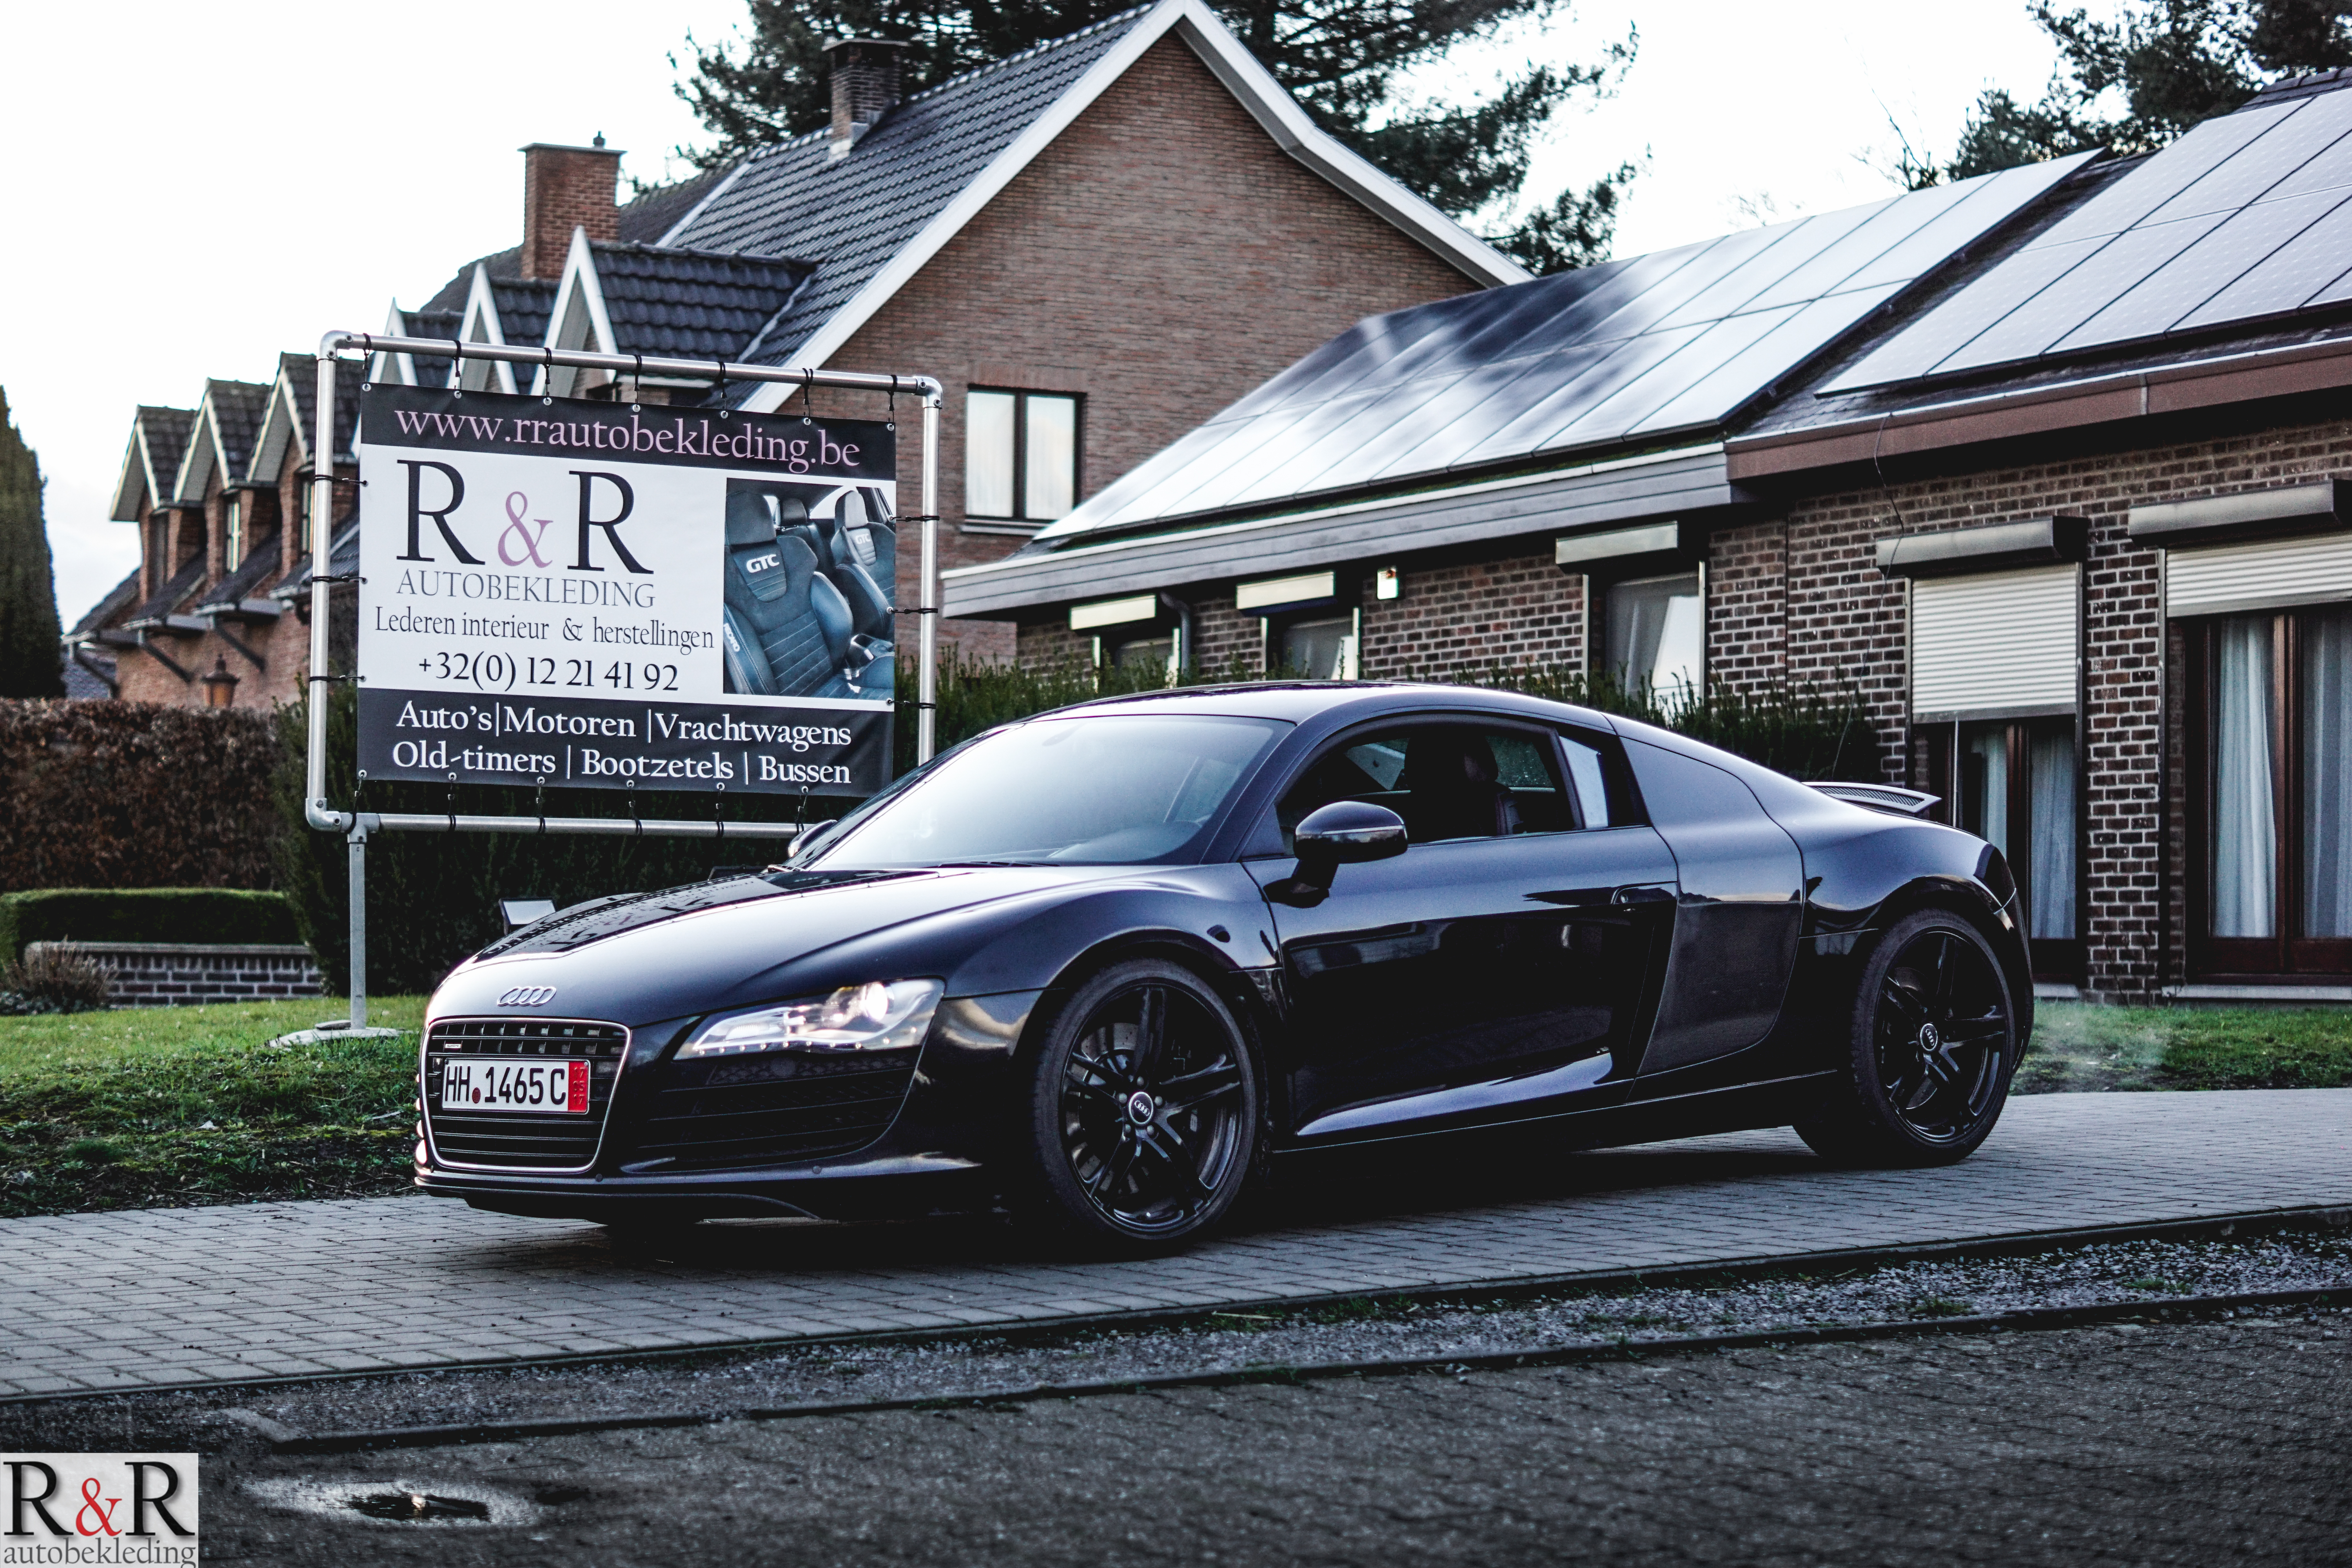 The Carbon Stallion - R&R autobekleding